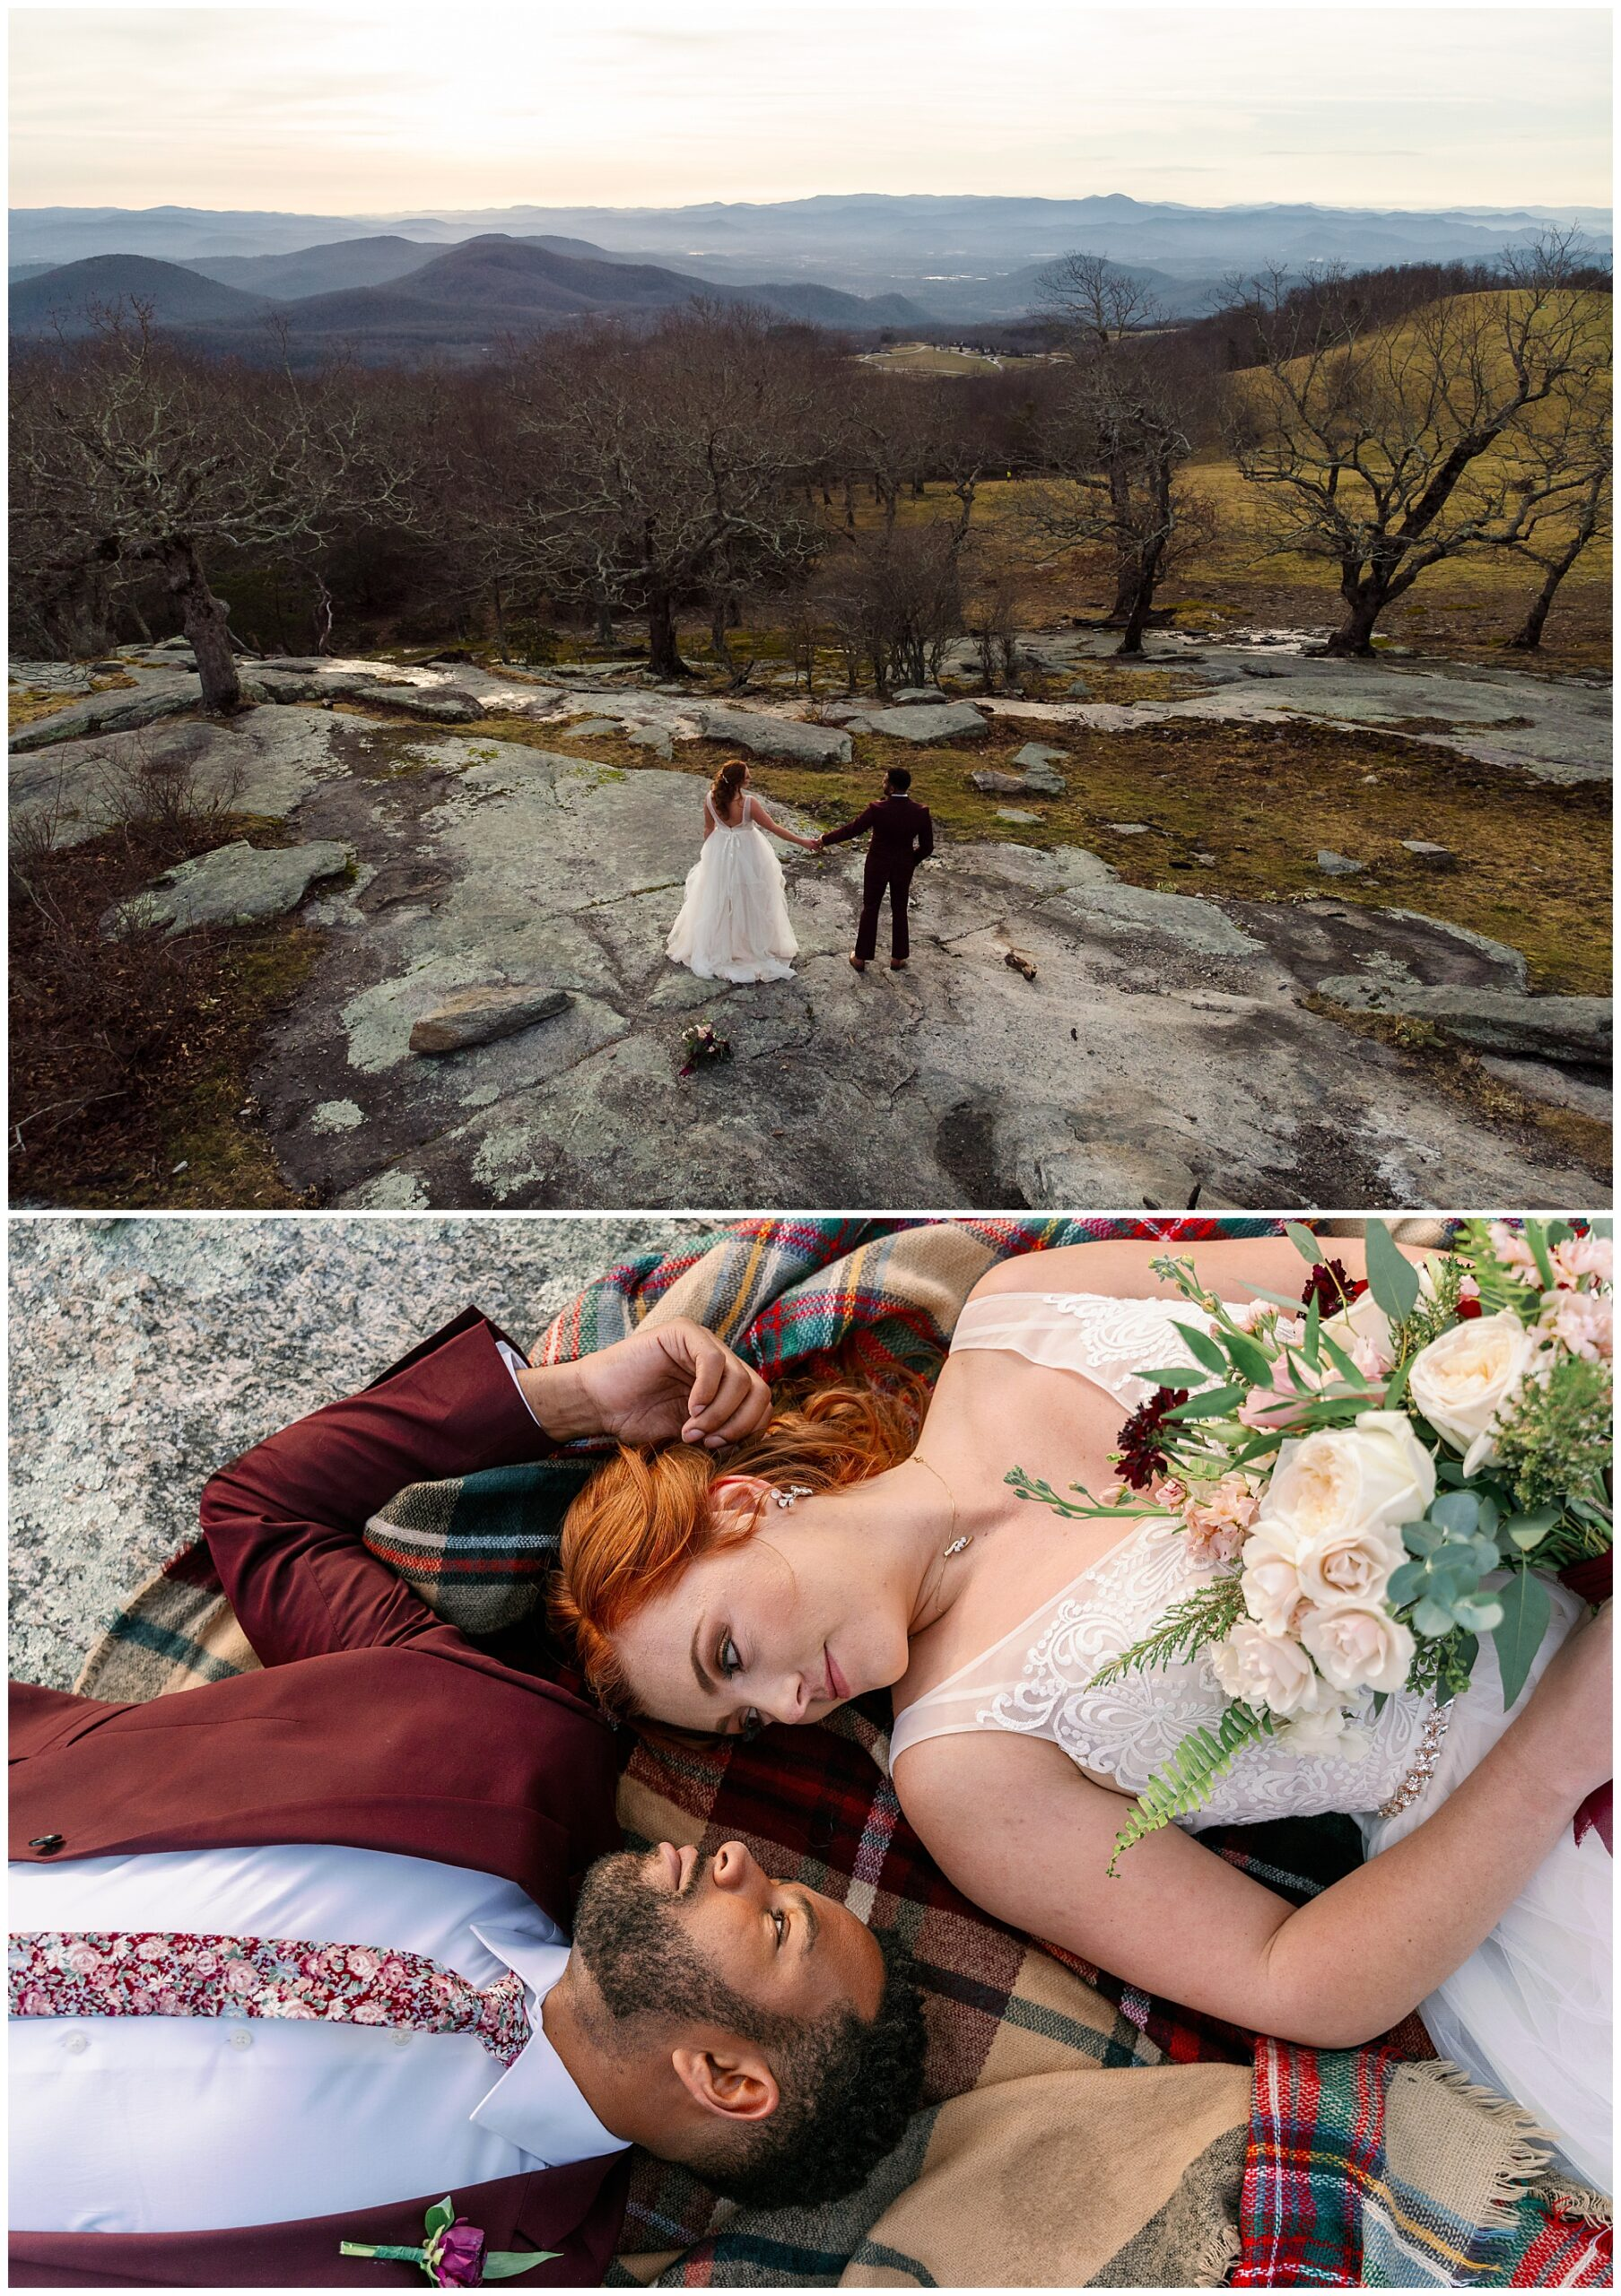 The view of bearwallow mountain and a close up image of the bride and groom laying on a plaid scarf